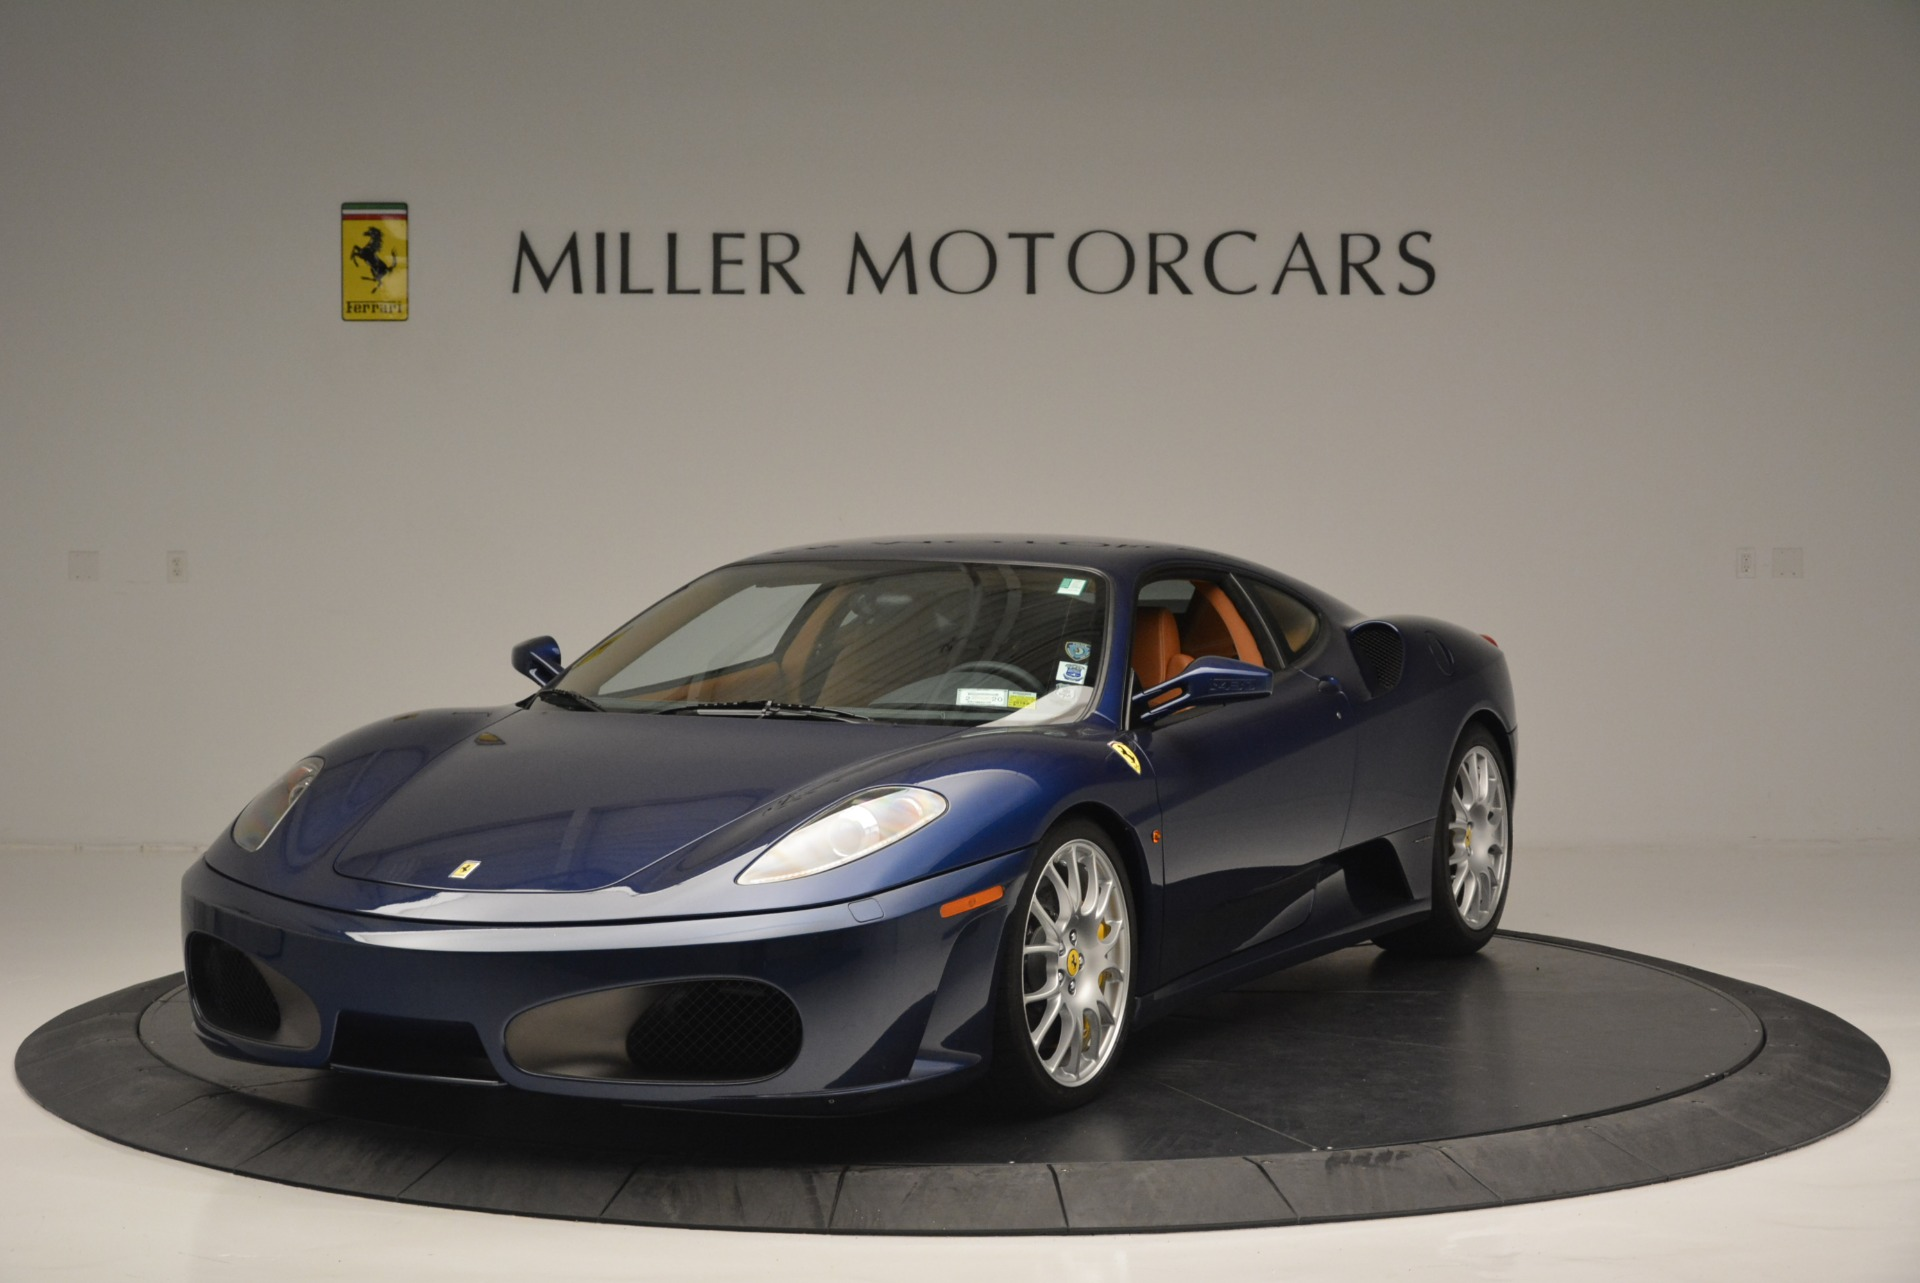 Pre Owned 2009 Ferrari F430 6 Speed Manual For Sale Miller Motorcars Stock 4496c